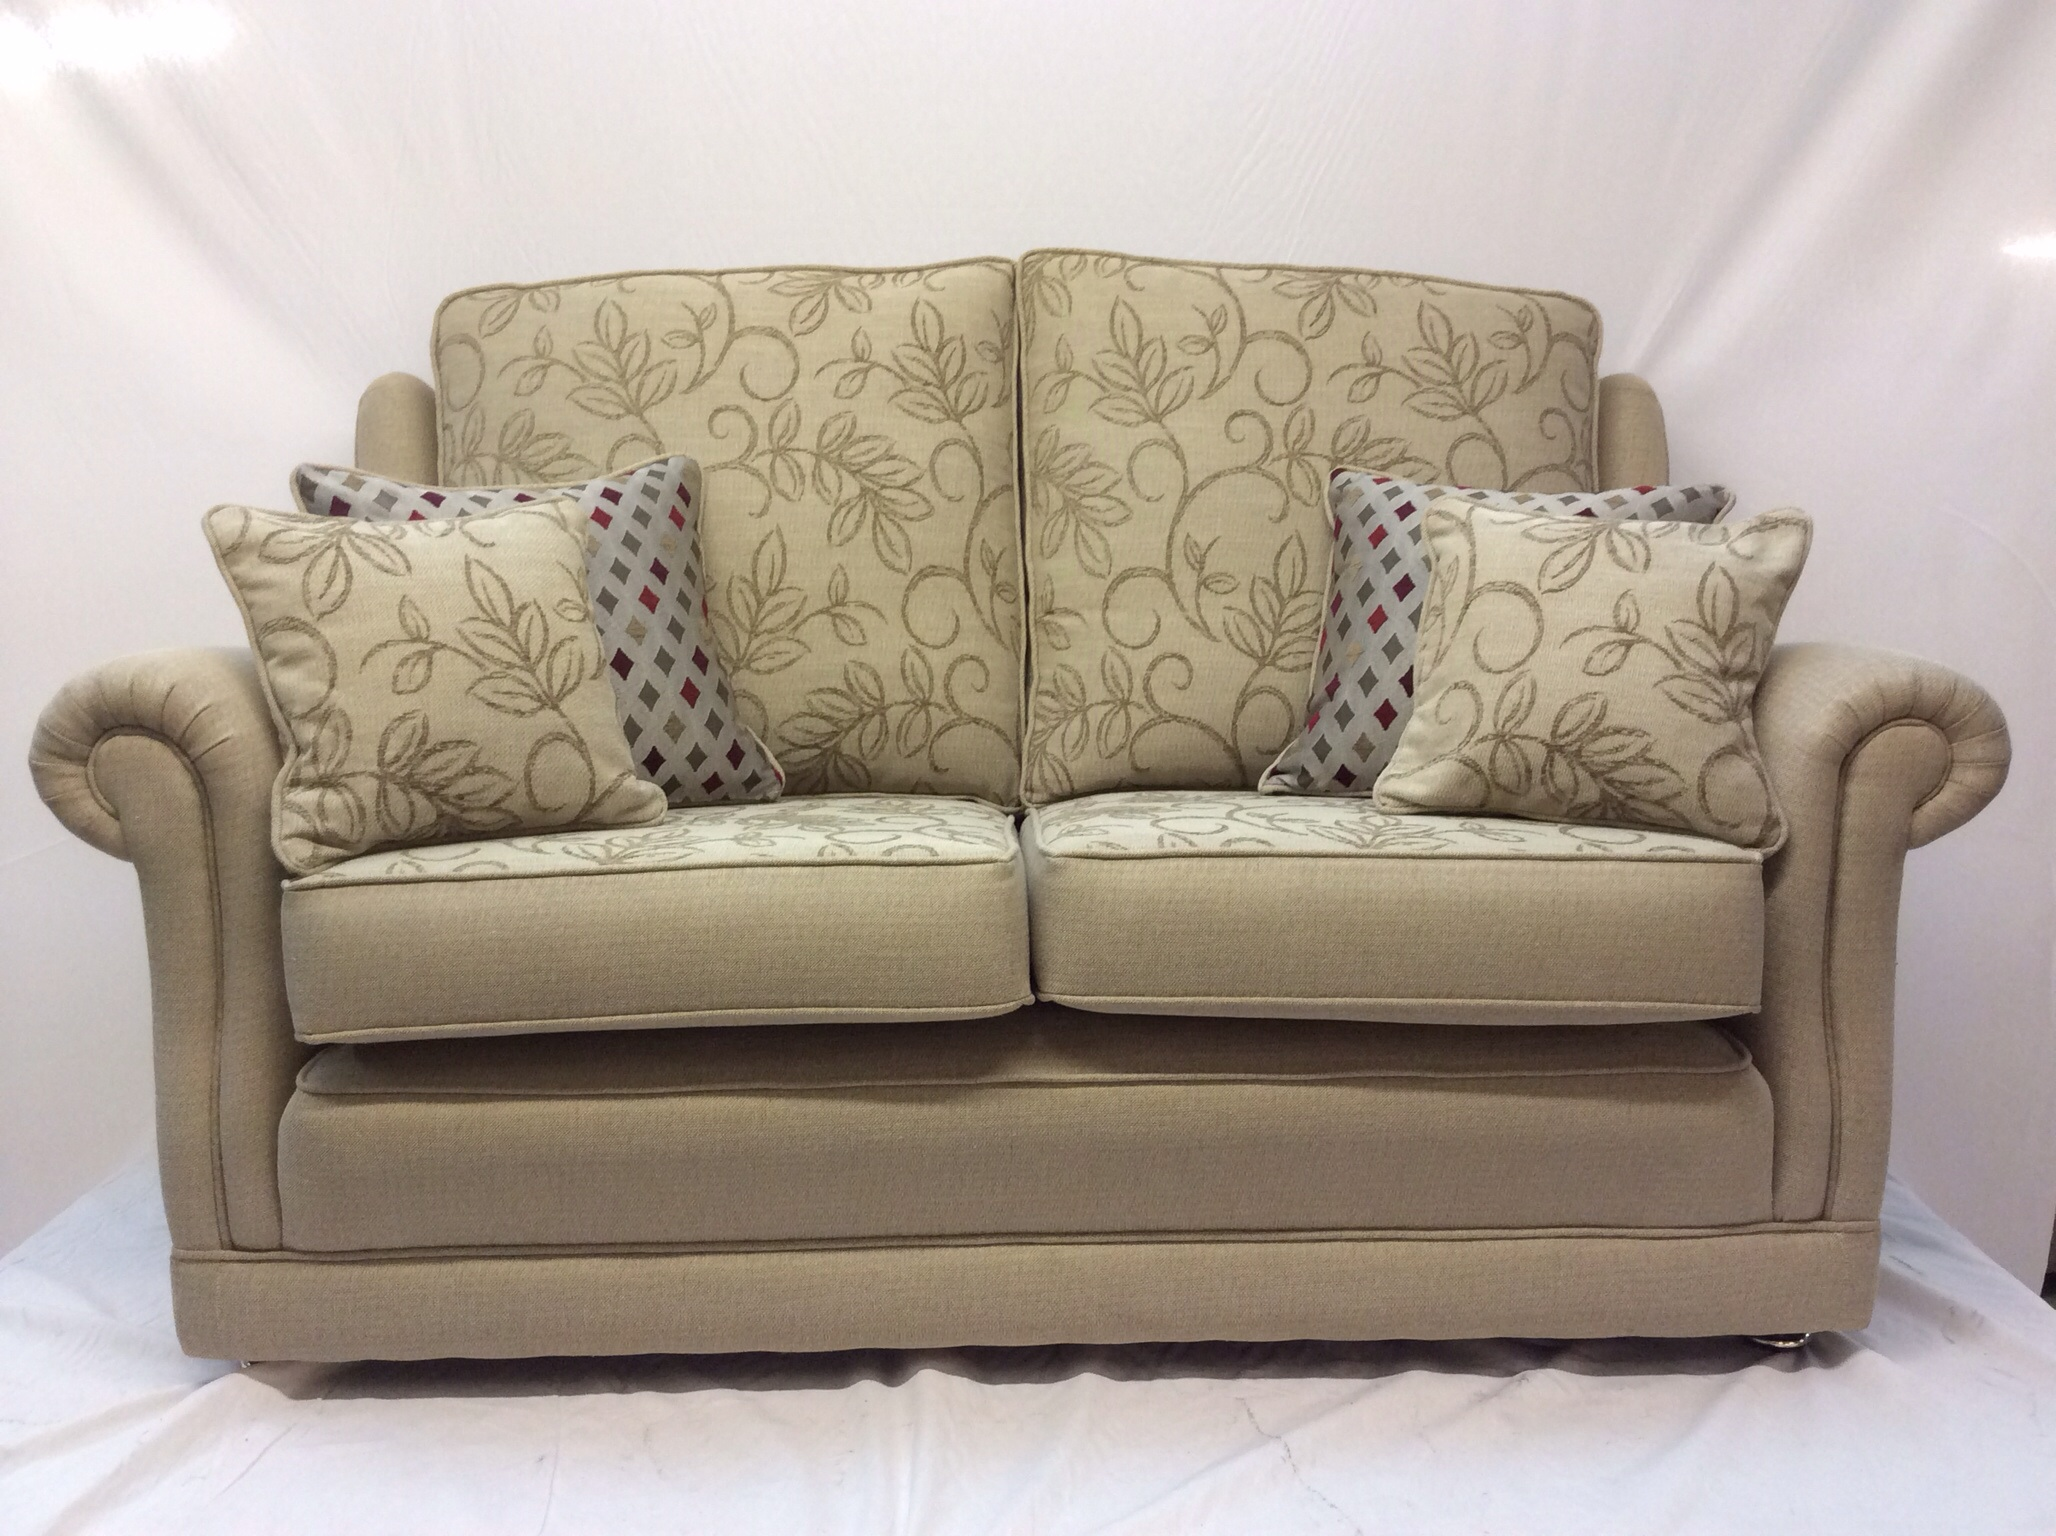 sofa reupholstering stain resistant uk and chair designs ralvern upholstery bespoke sofas